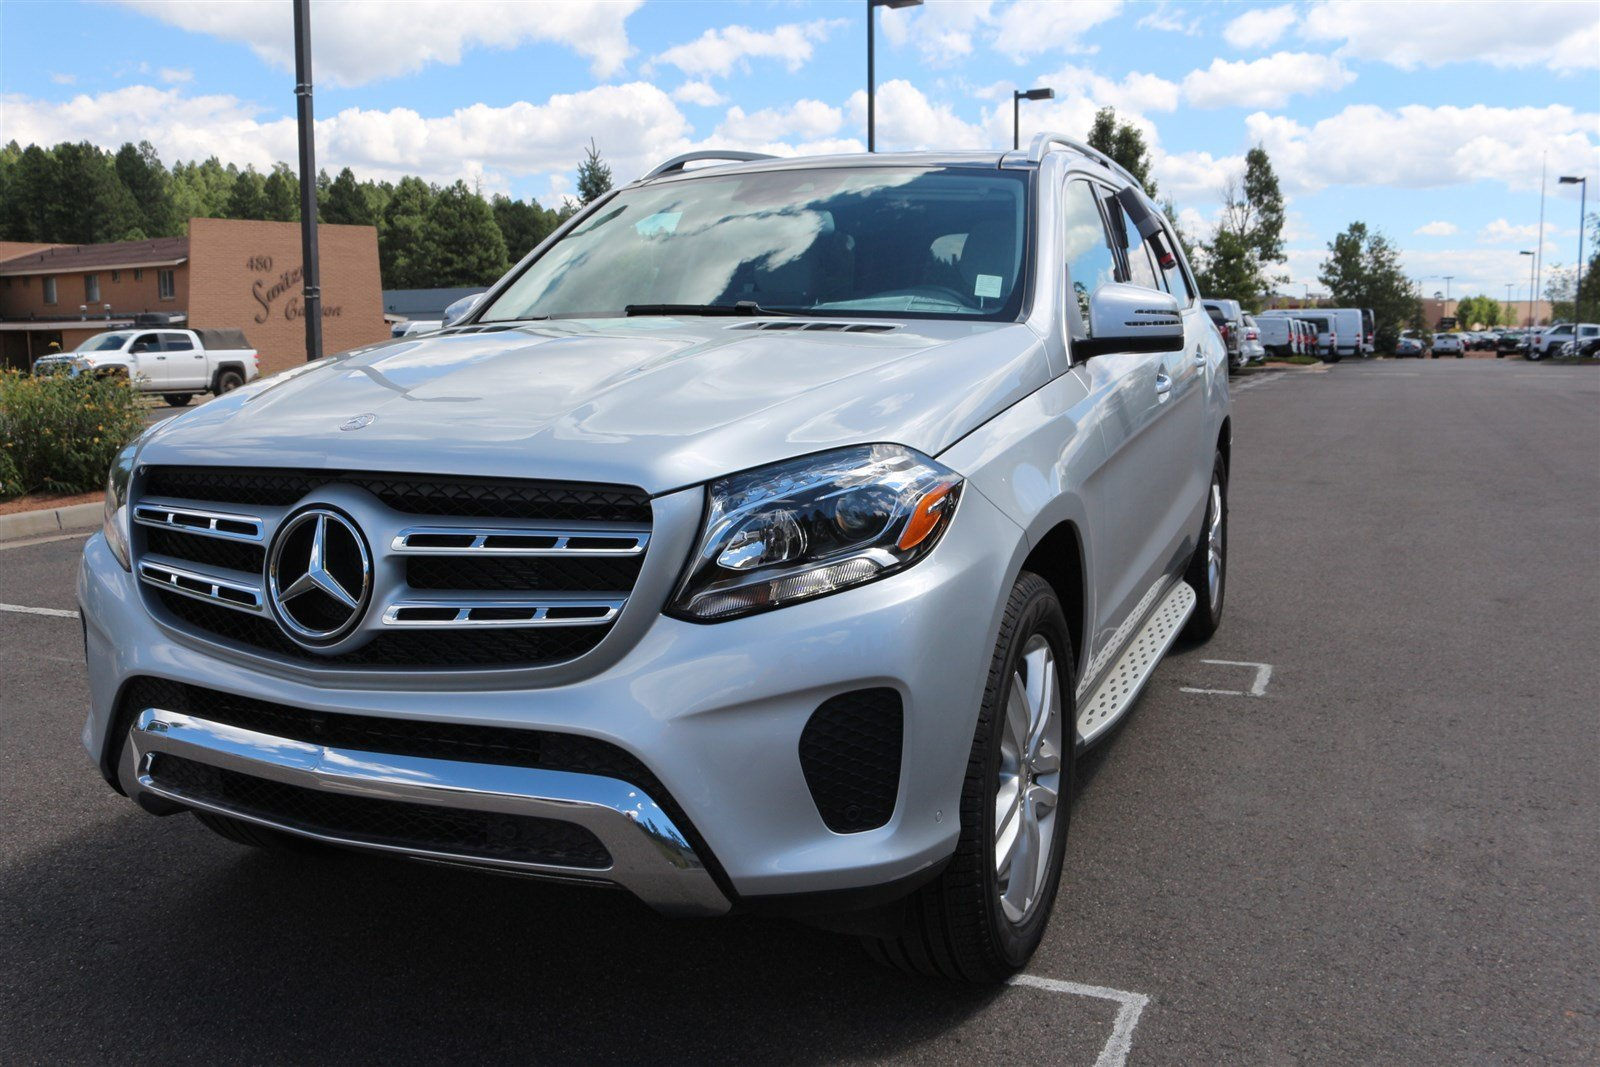 New 2017 mercedes benz gls gls450 suv in flagstaff mh1433 for Mercedes benz of flagstaff